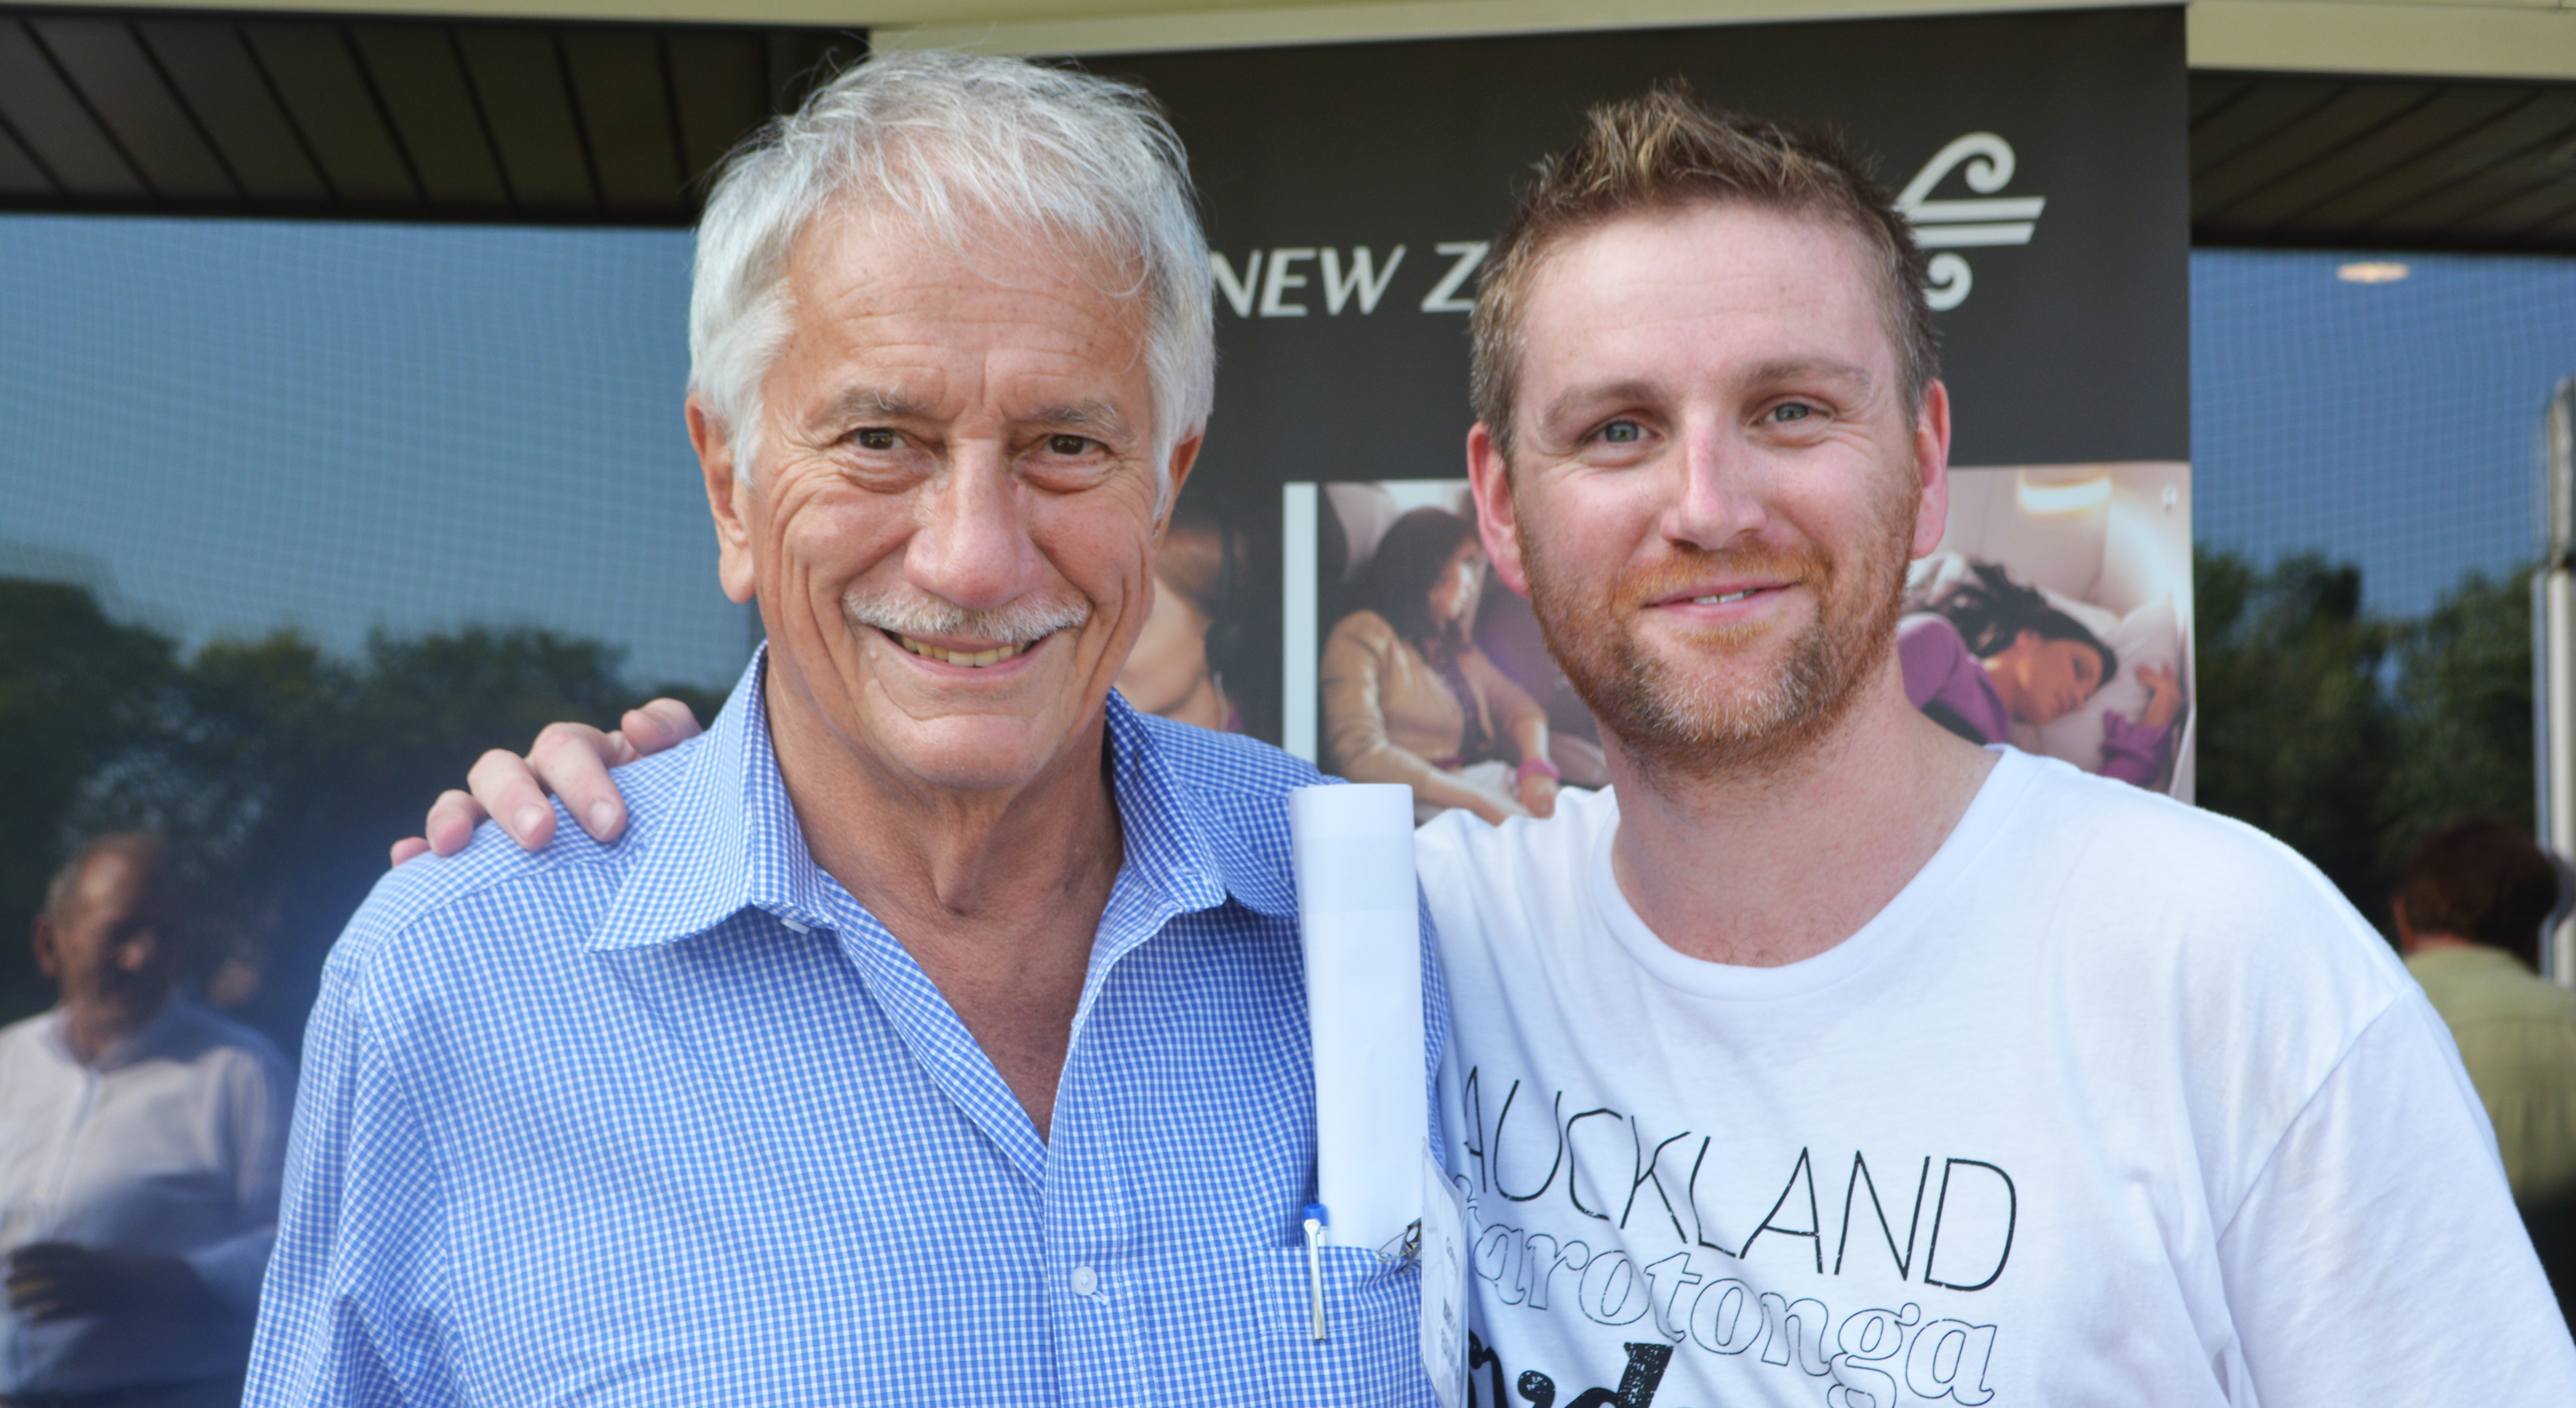 Goway takes on Air New Zealand in annual cricket match; both come out winners